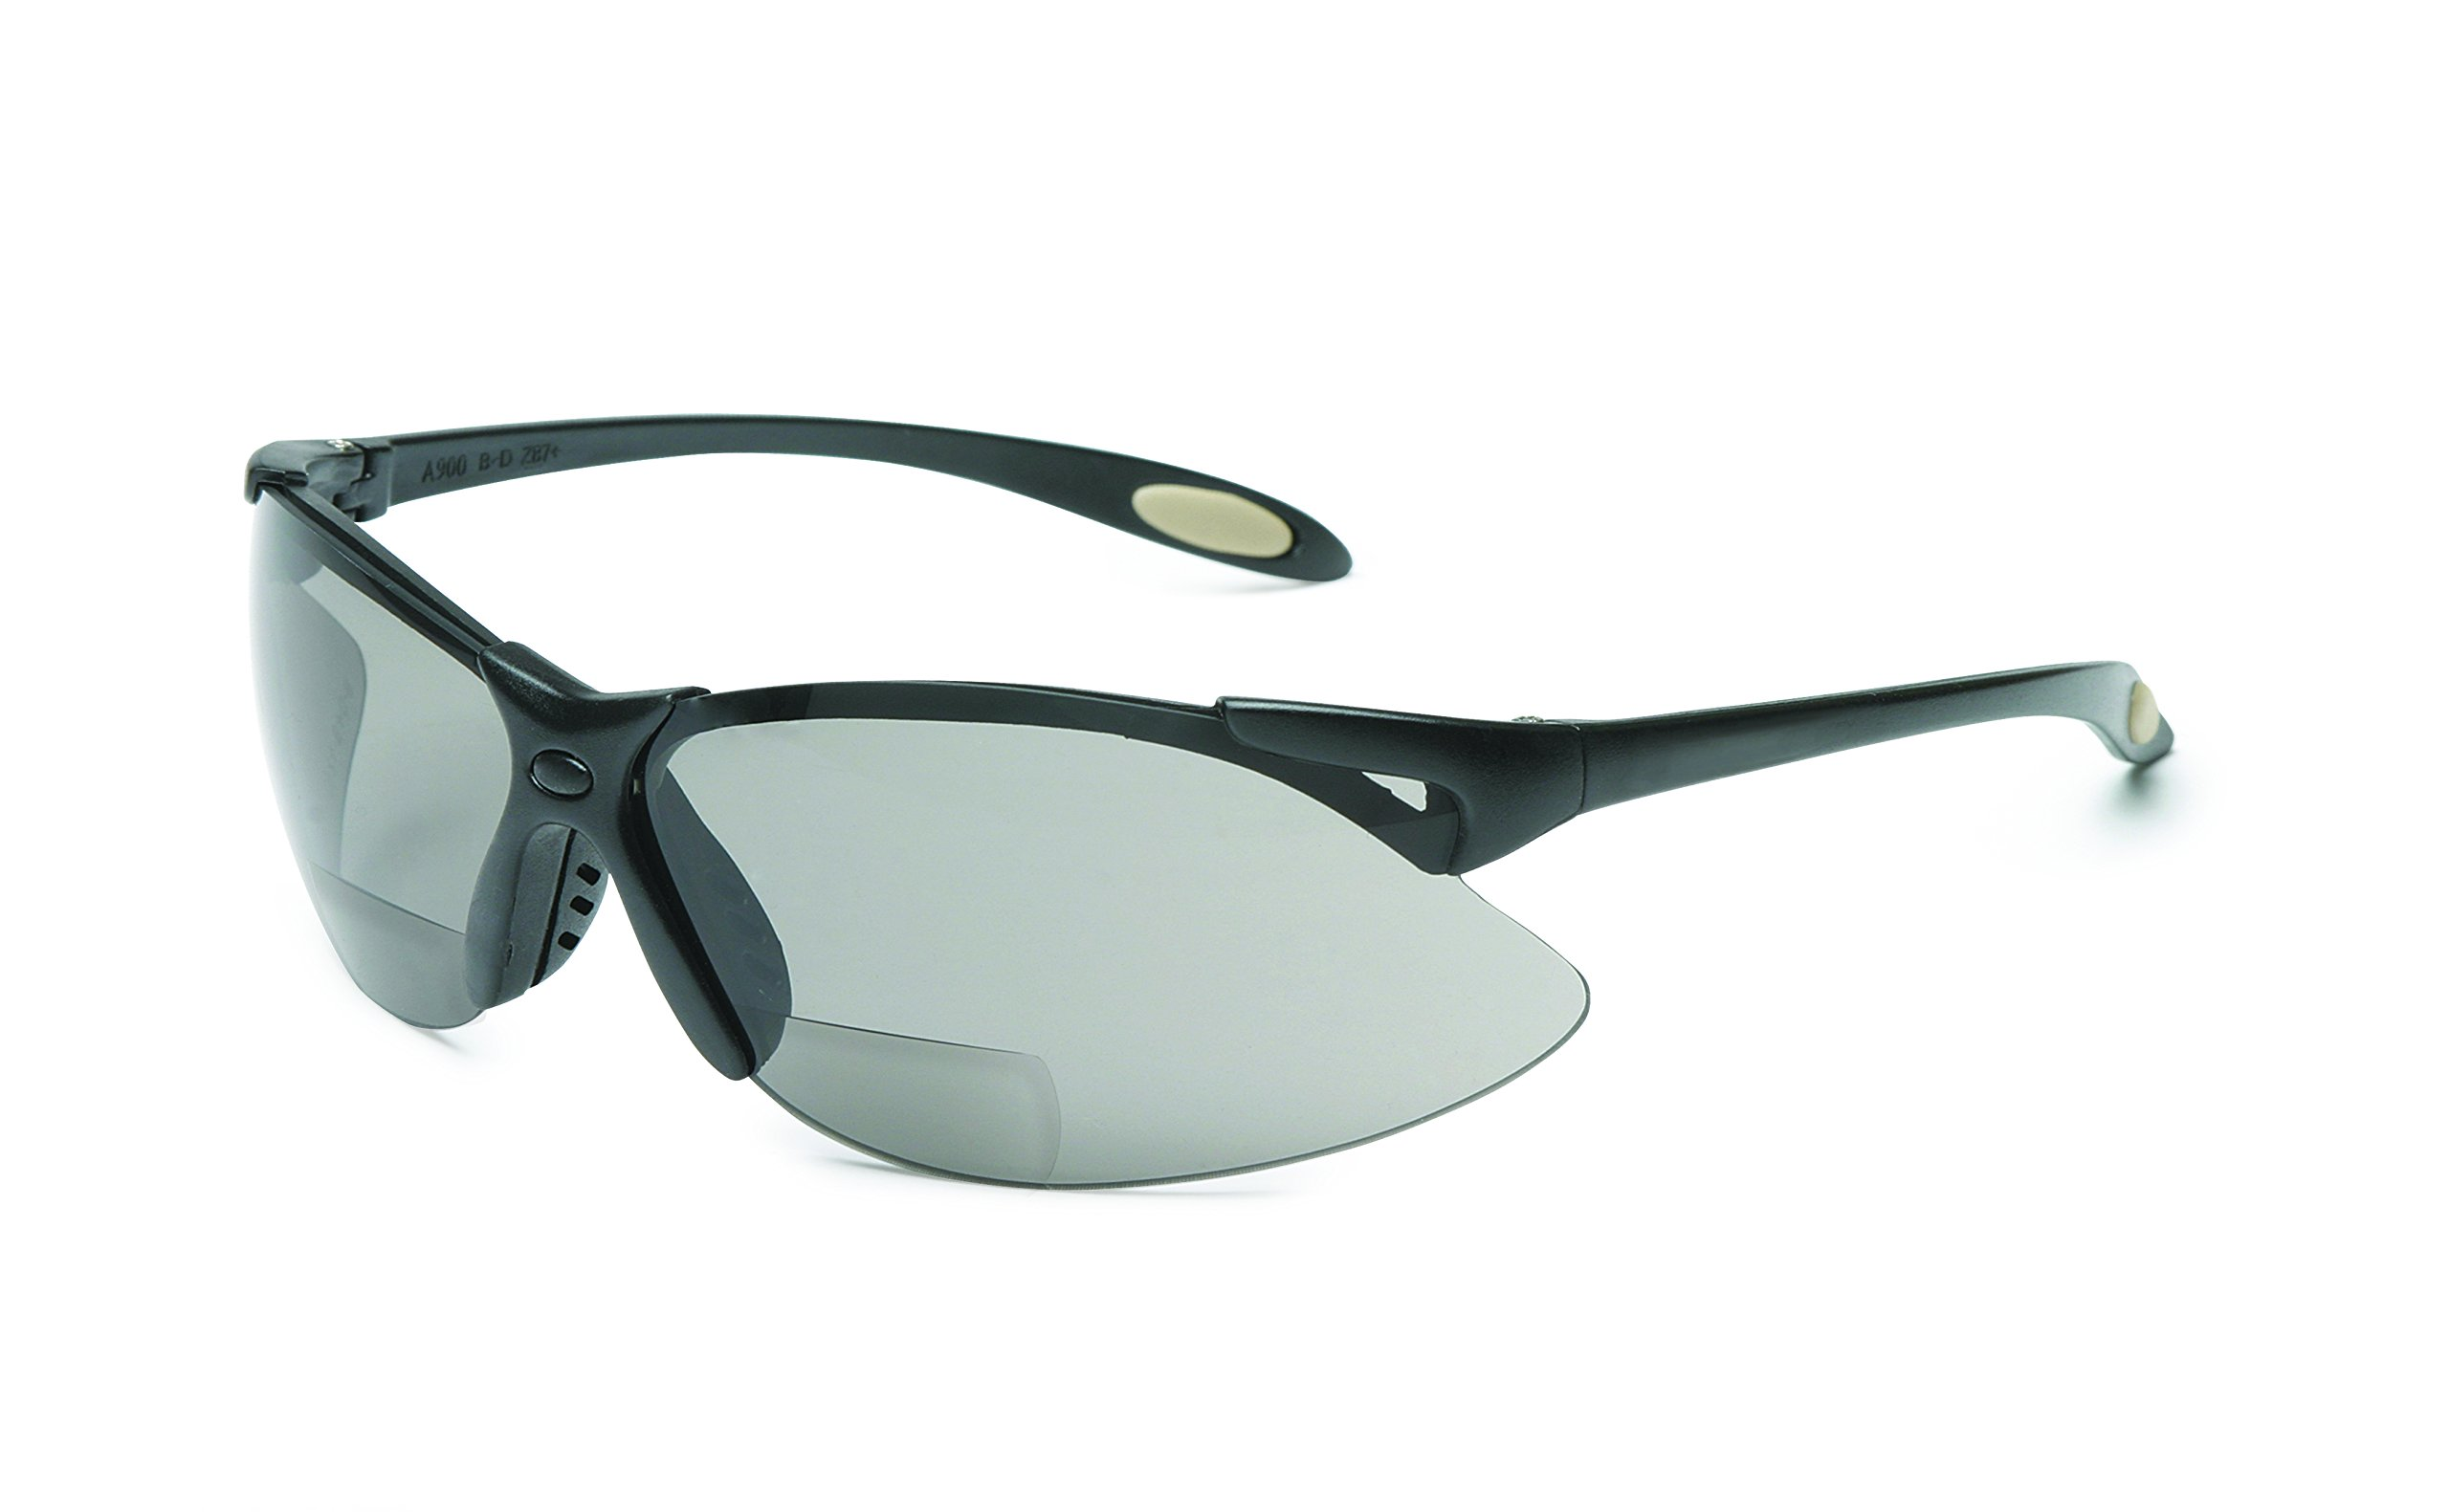 UVEX by Honeywell A960 Reader/Magnifier Series Black Frame, 1.5 Diopter TSR Gray Lens with Anti-Scratch Hardcoat